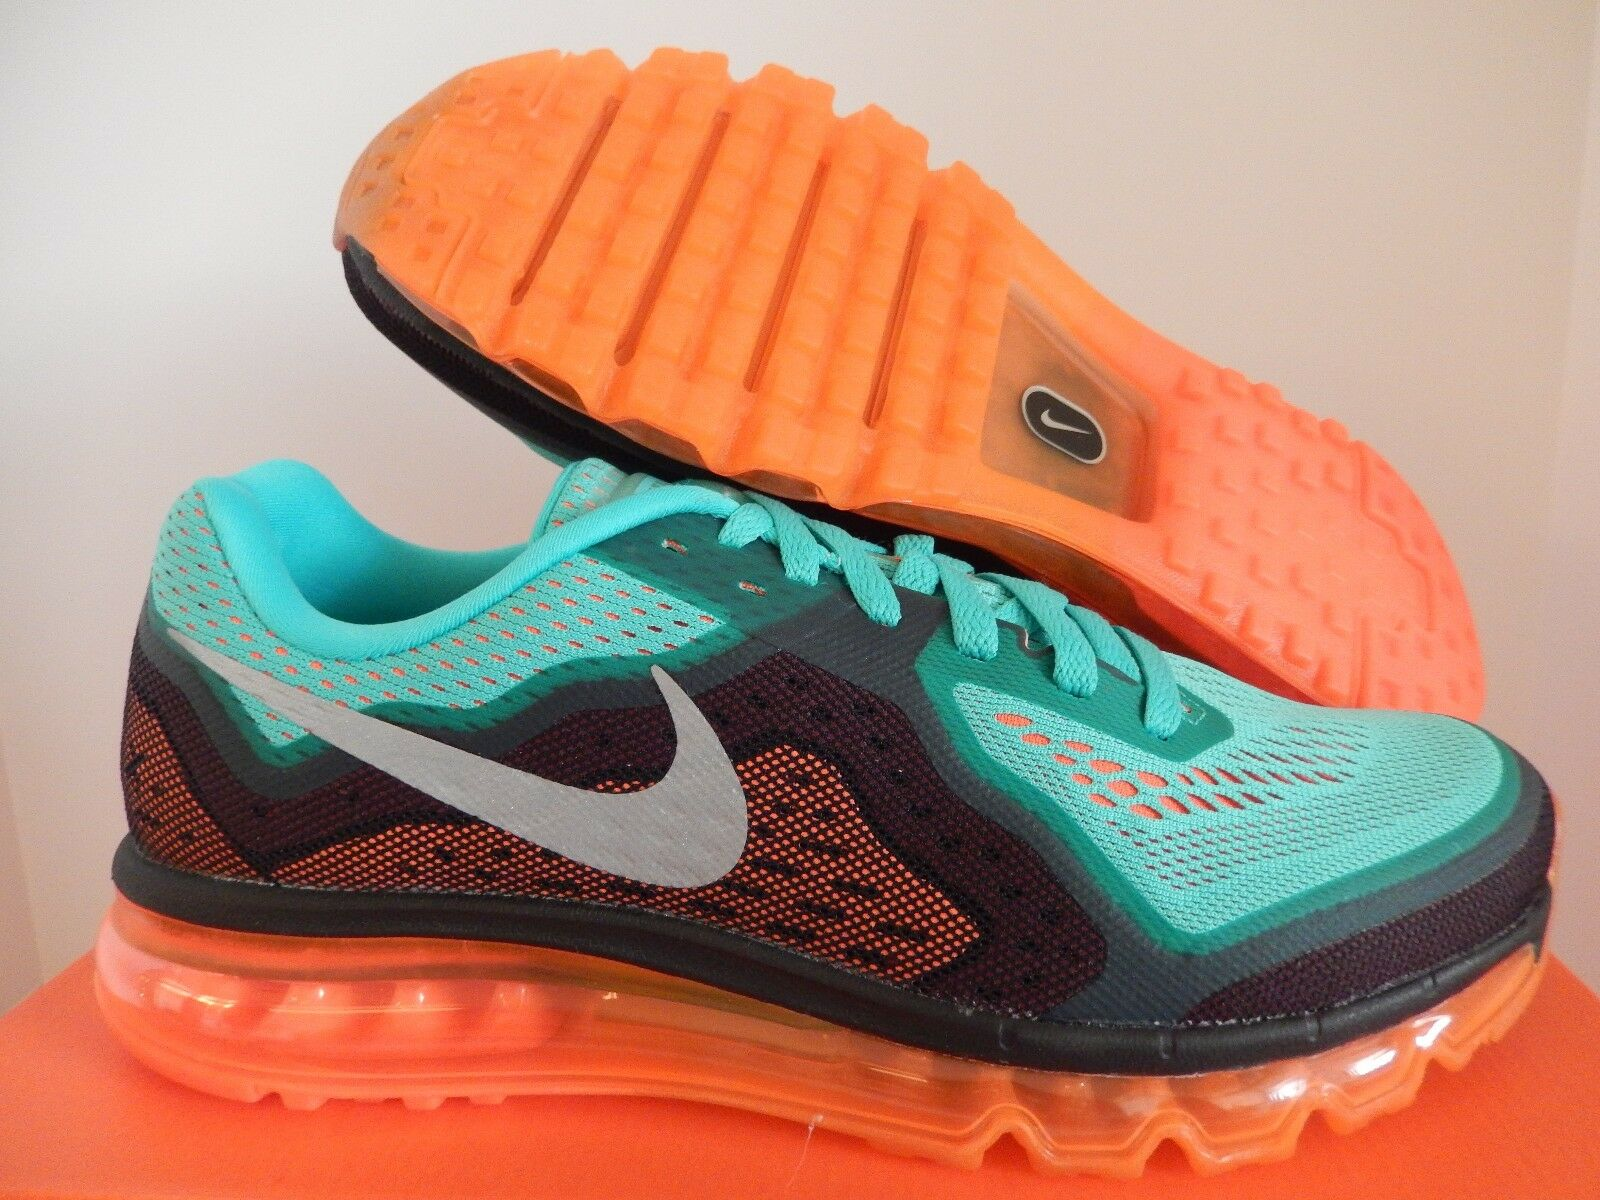 NIKE AIR MAX 2018 HYPER JADE-BLACK-ORANGE-SILVER Price reduction best-selling model of the brand